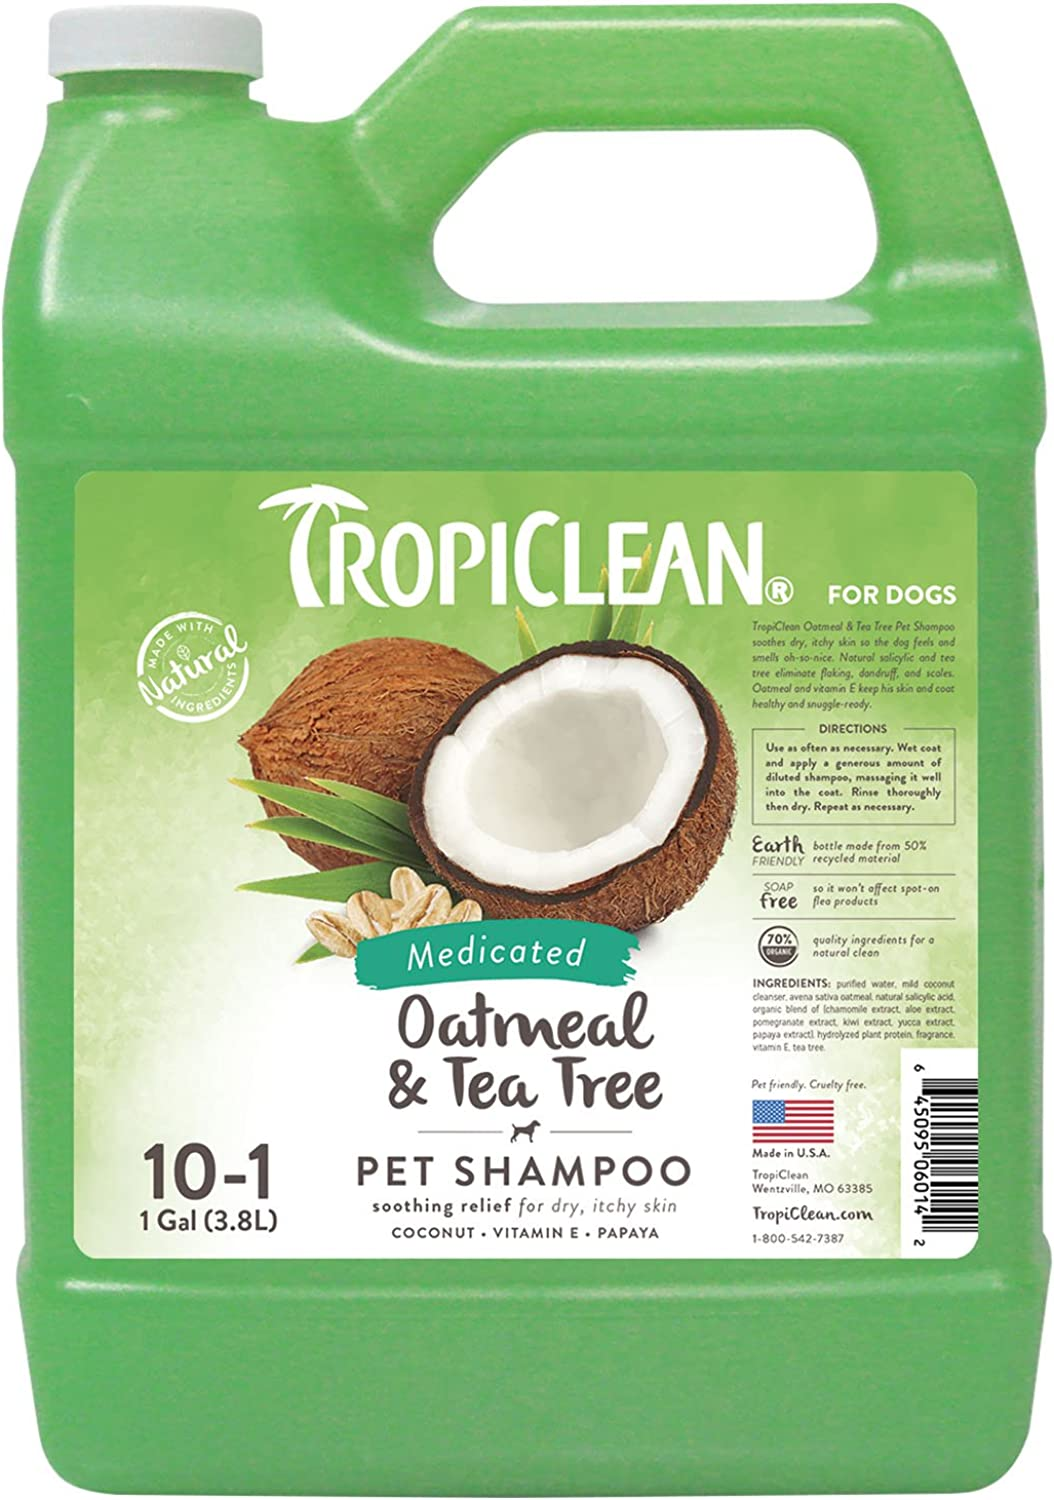 COSMOS 060142 TropiClean Oatmeal and Tea Tree Medicated Dog Shampoo, 1 Gallon